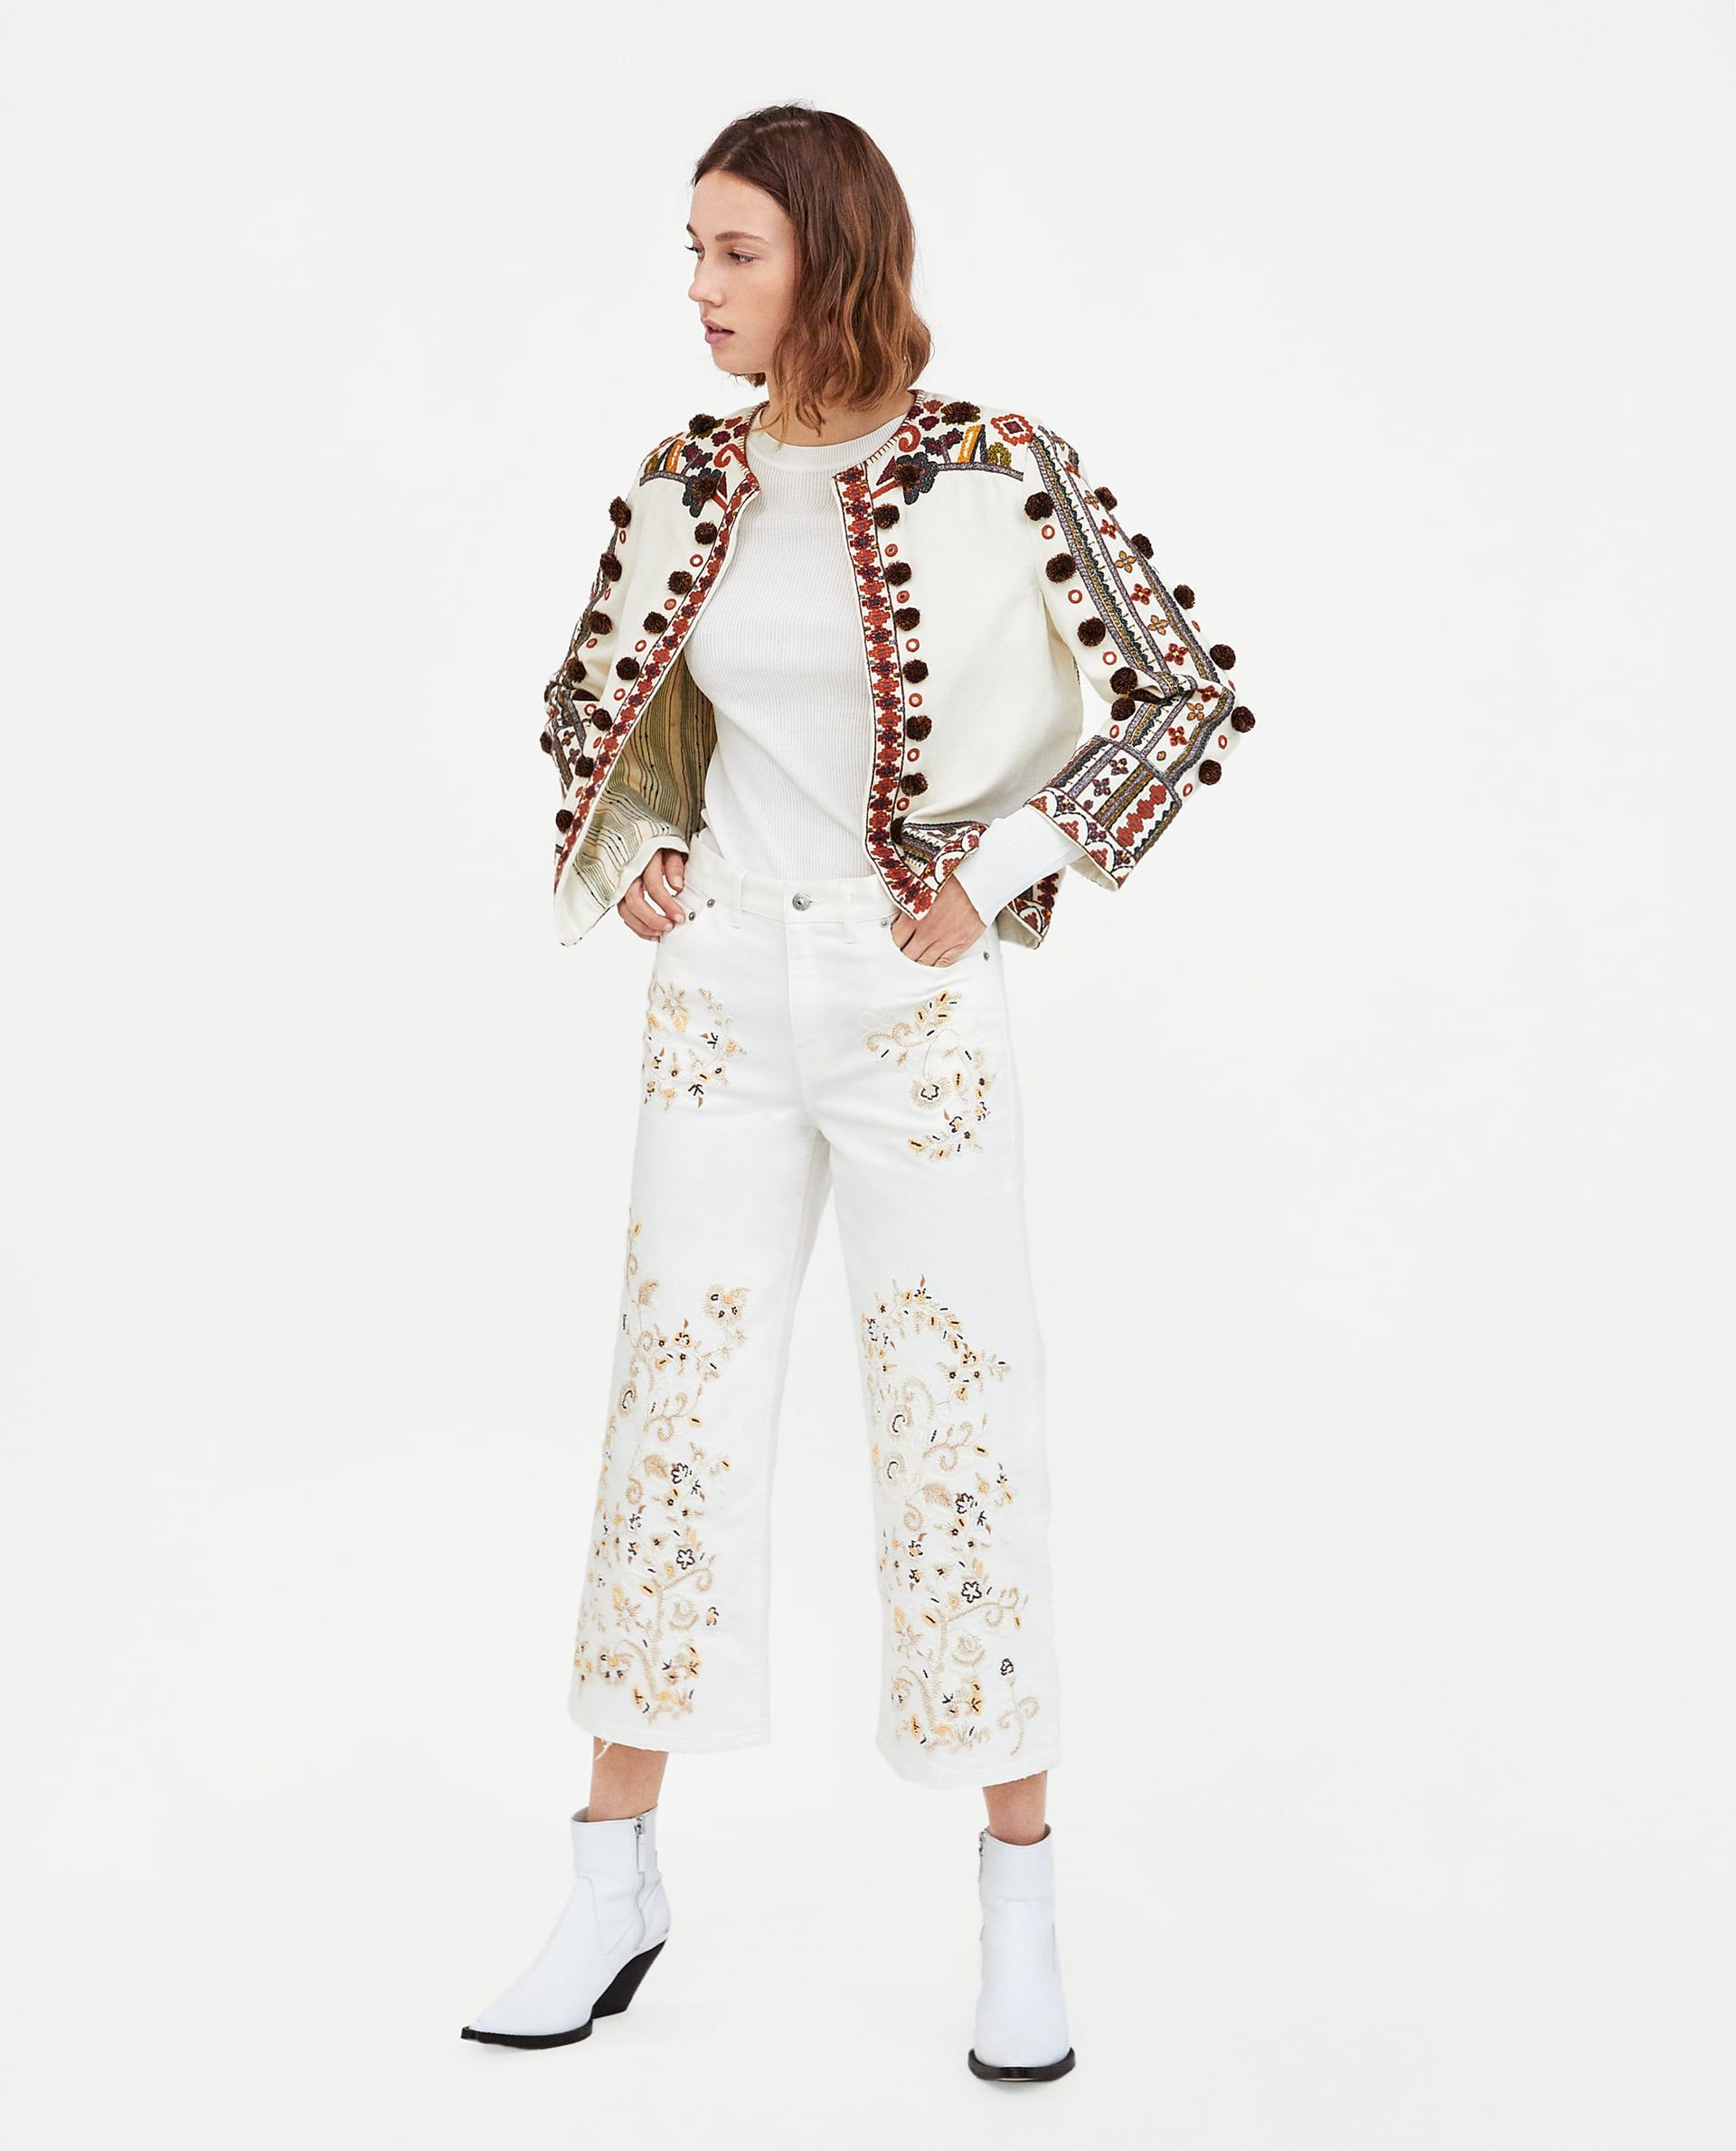 The Western Embroidery Culotte Culottes Fashion Womens